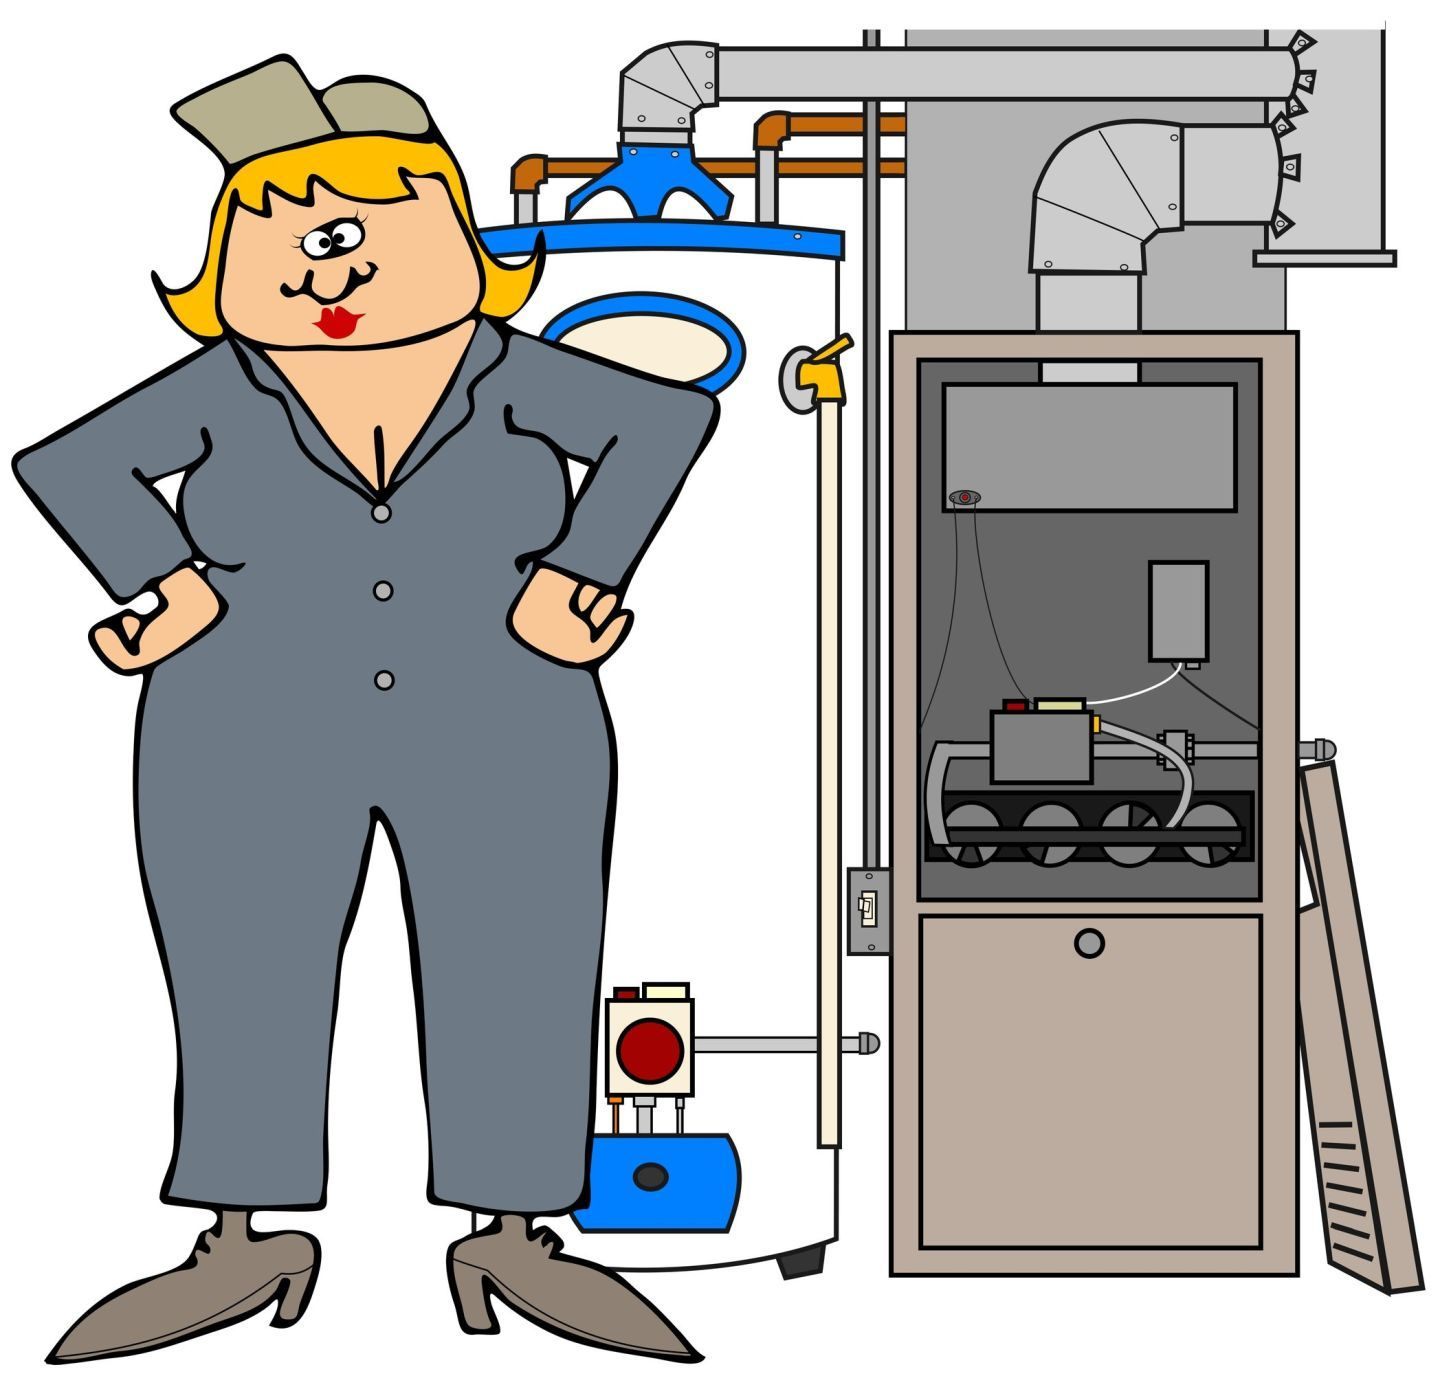 Common Furnace Problems and Repairs Furnace problems